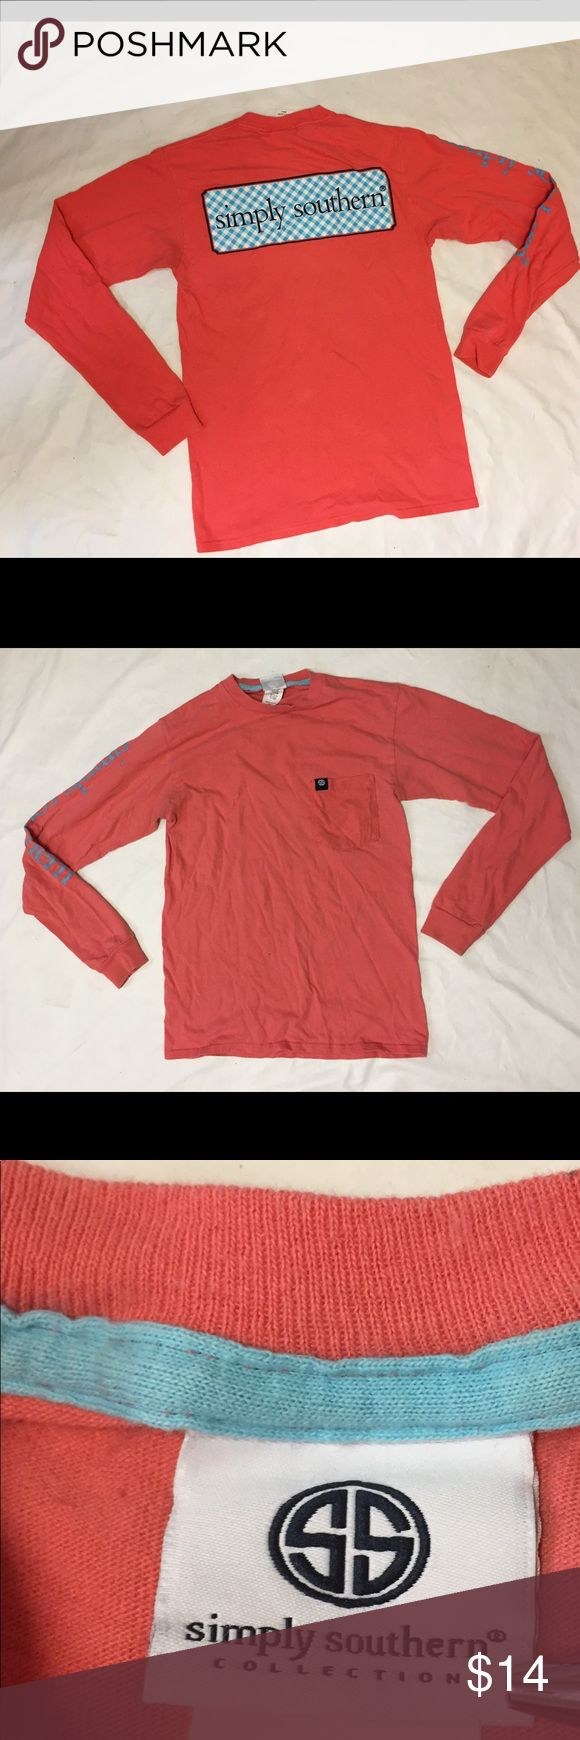 """Simply Southern Salmon Pink Long Sleeve Shirt S Good condition. Salmon pink long sleeve graphic T-Shirt. 100% Cotton. Normal cosmetic wear and wash. Tiny discoloration spots throughout and hole on the front shirt. Smoke free environment. Offers welcome! 16"""" chest lying flat 26"""" length 24"""" sleeve length  *All measurements are approximate. Images color may vary due to graphics of computer or mobile devices. Color is as stated in the description. Any flaws will be expressly noted or shown in…"""